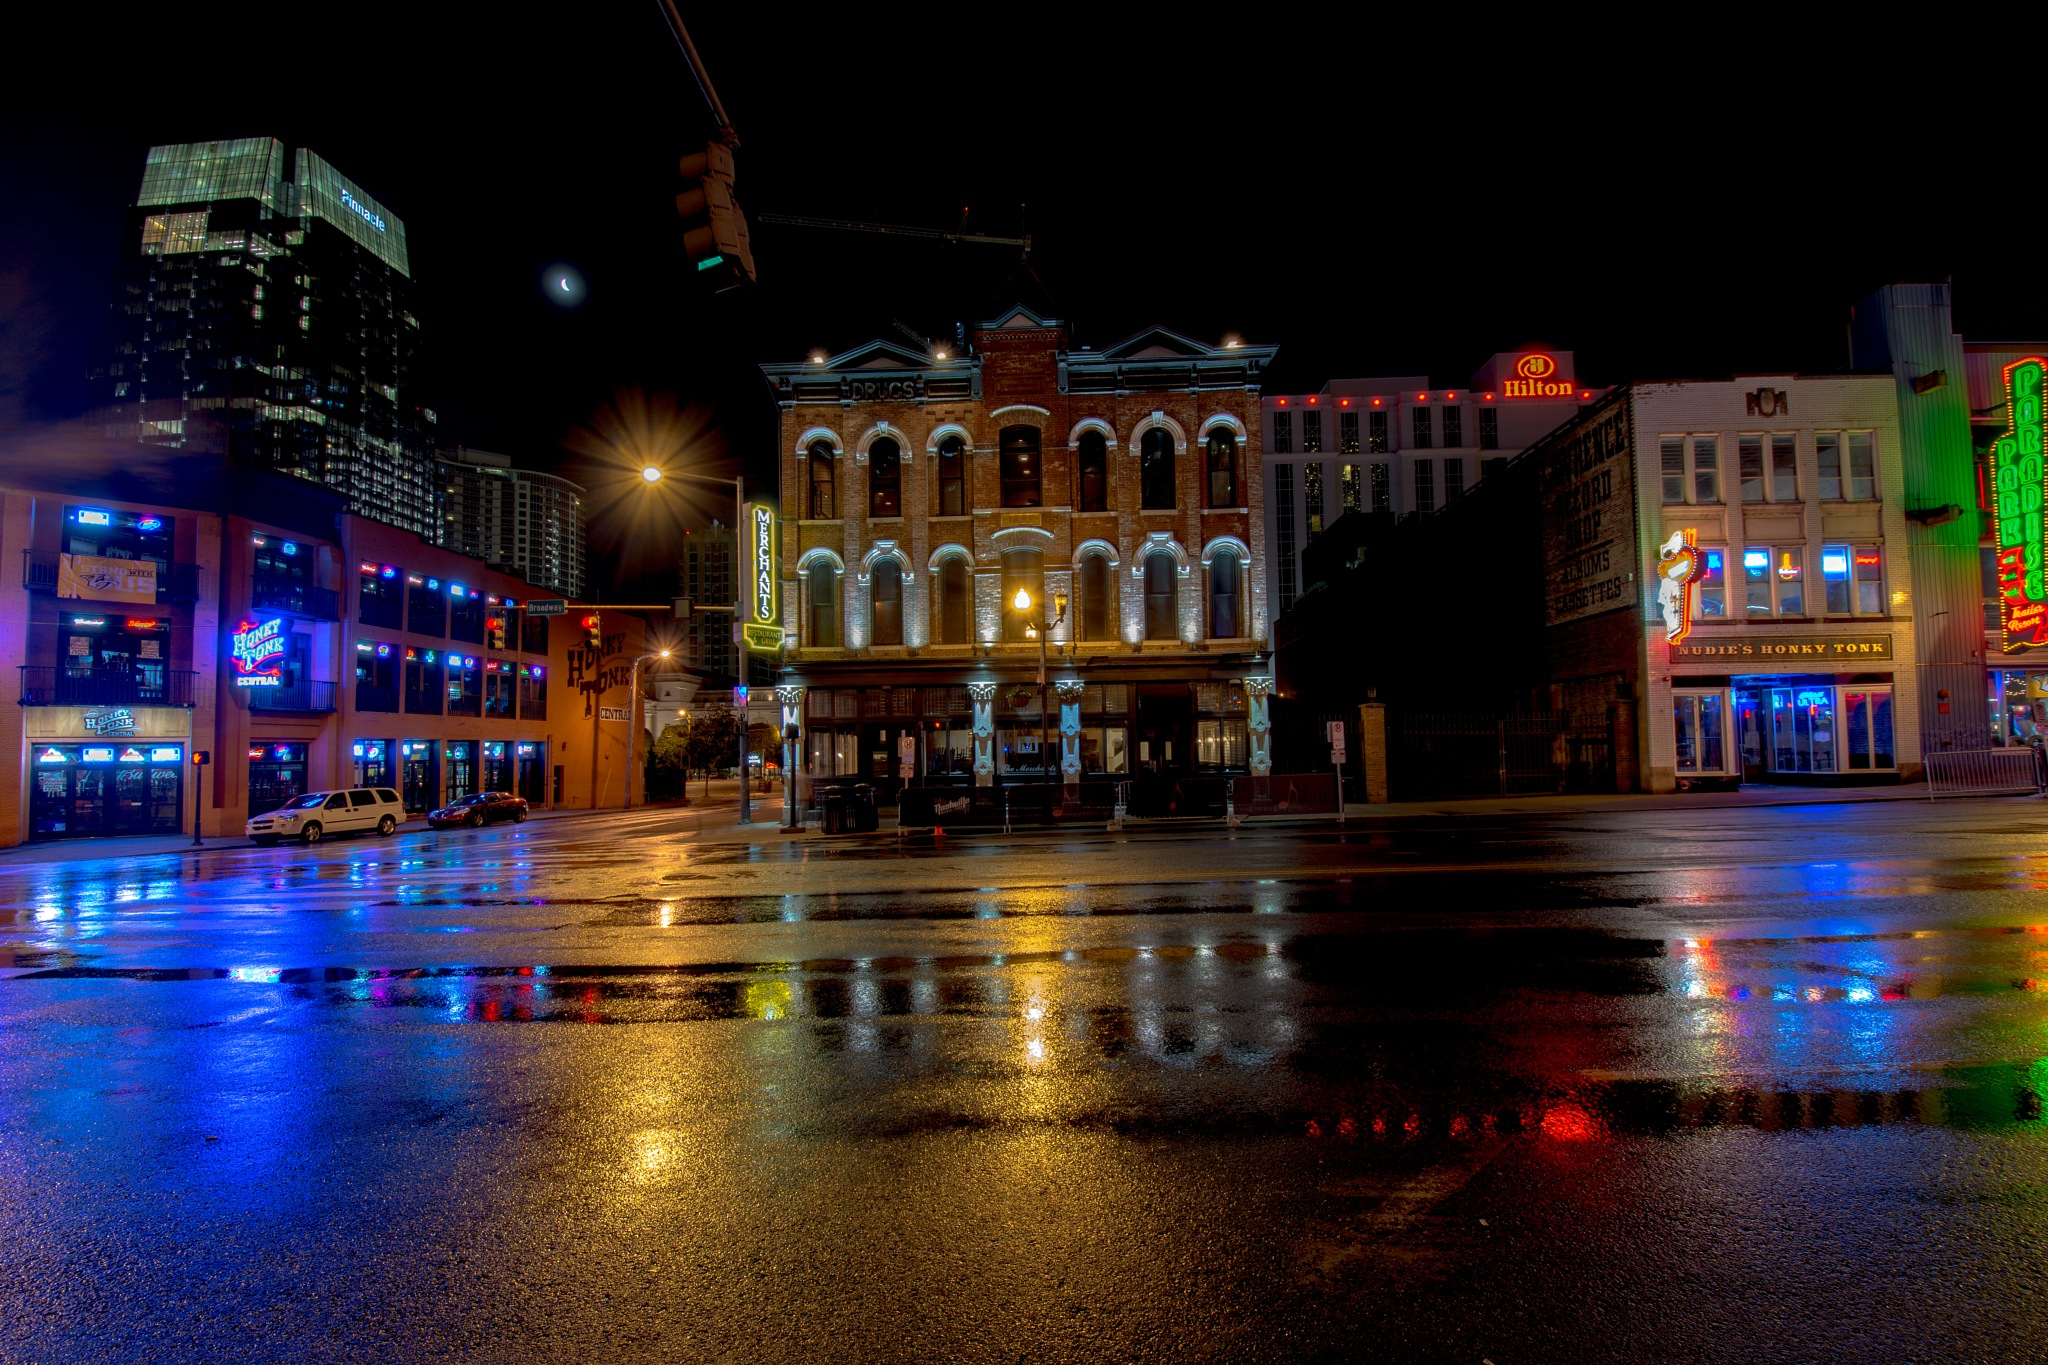 Broadway, Nashville, before dawn by John Schneyer